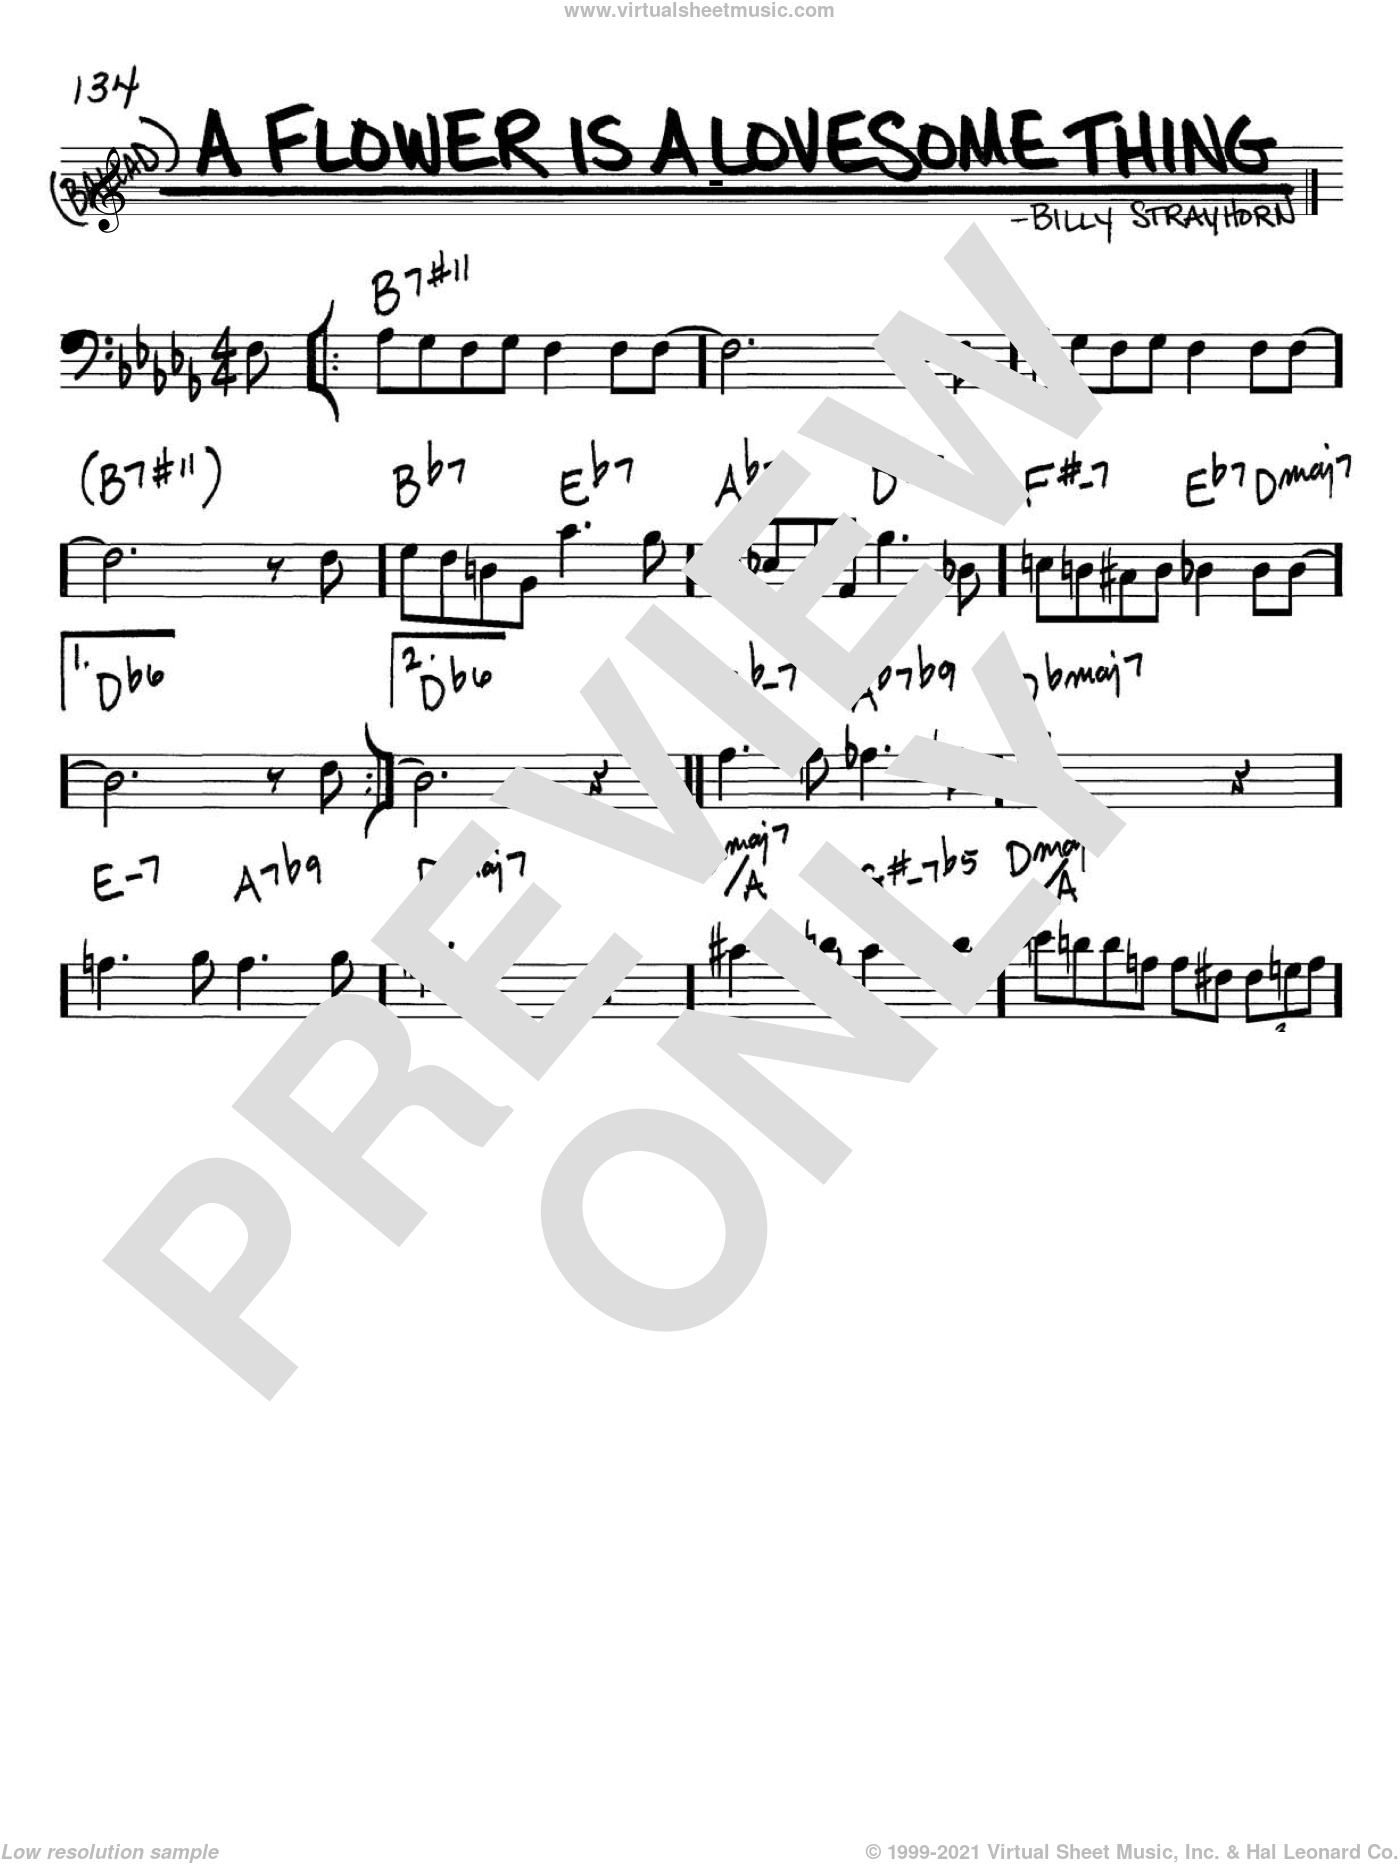 A Flower Is A Lovesome Thing sheet music for voice and other instruments (Bass Clef ) by Billy Strayhorn